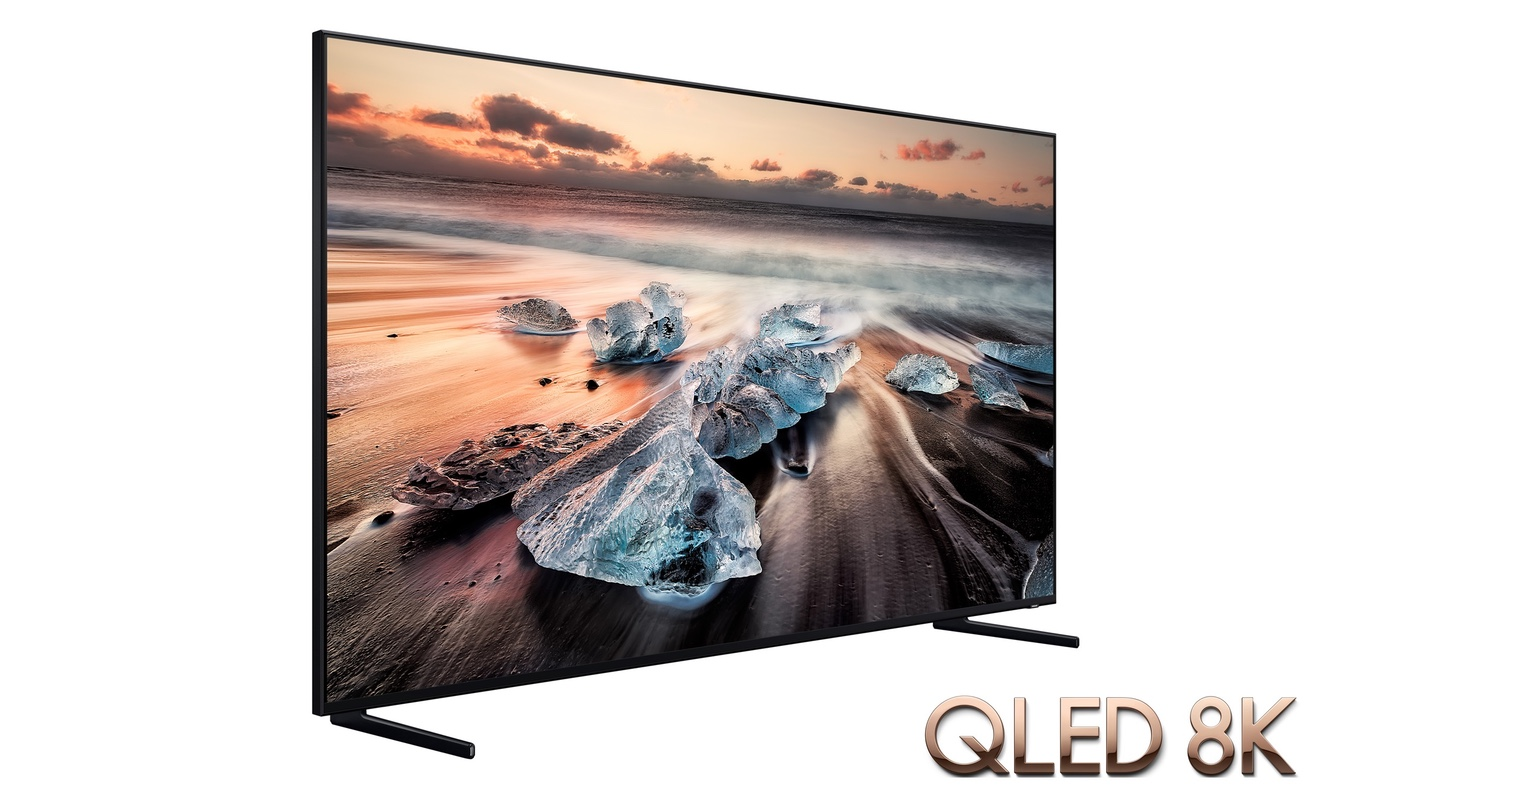 Samsung QLED 8K TV FB